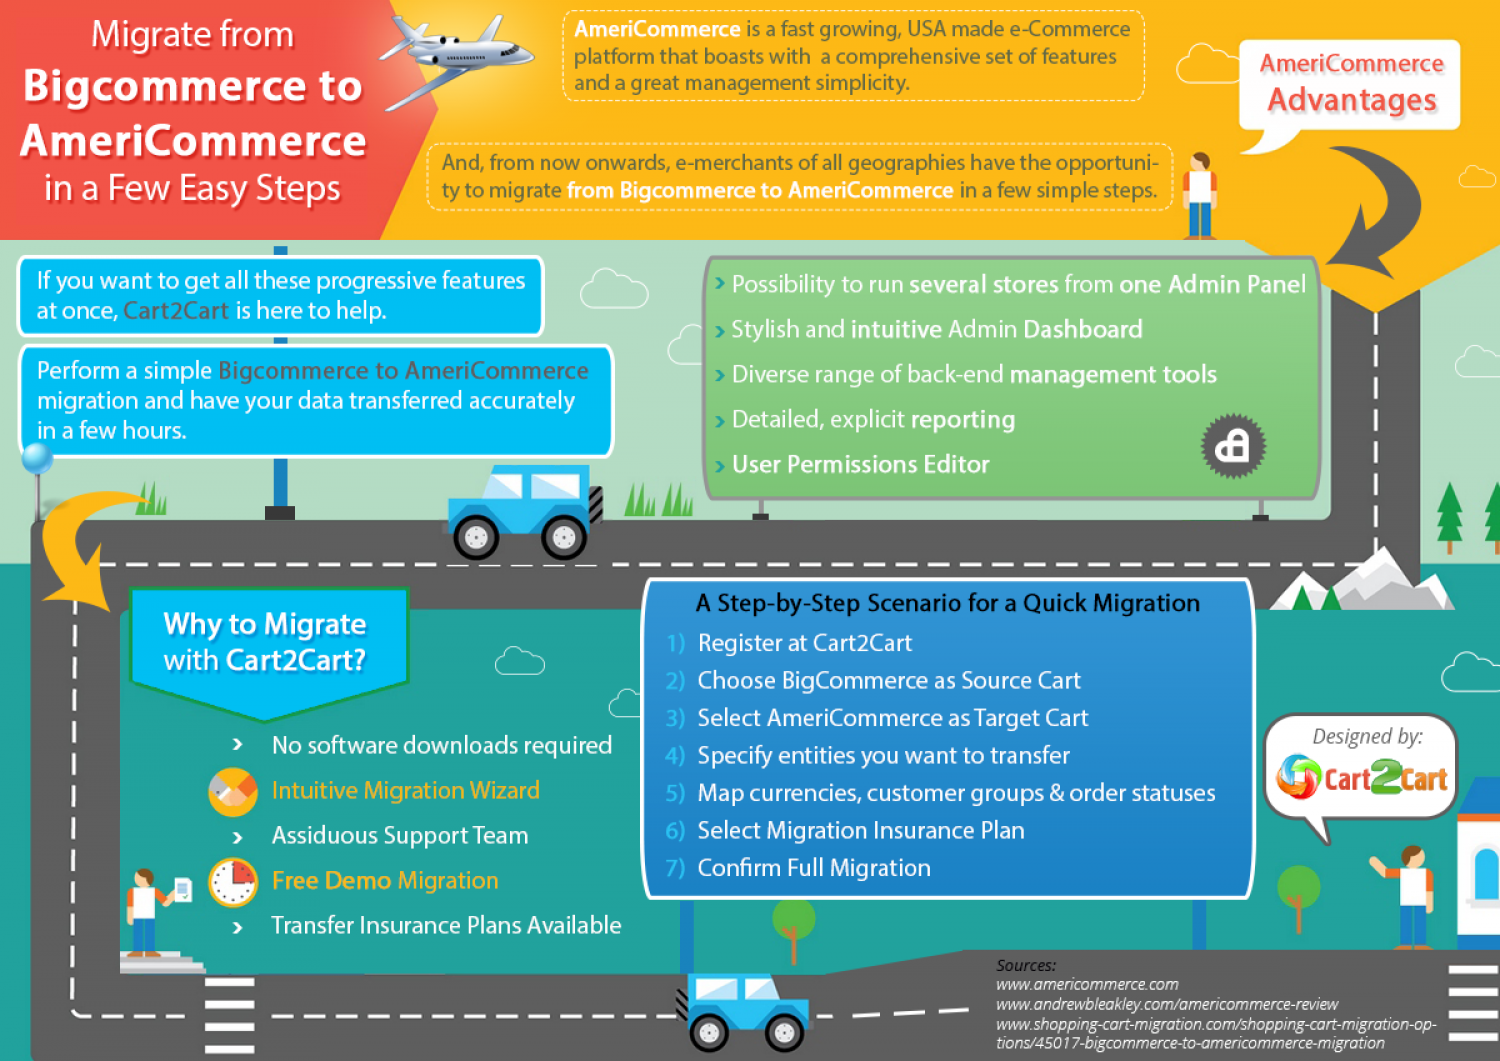 Migrate from  Bigcommerce to Americommerce in a Few Easy Steps Infographic